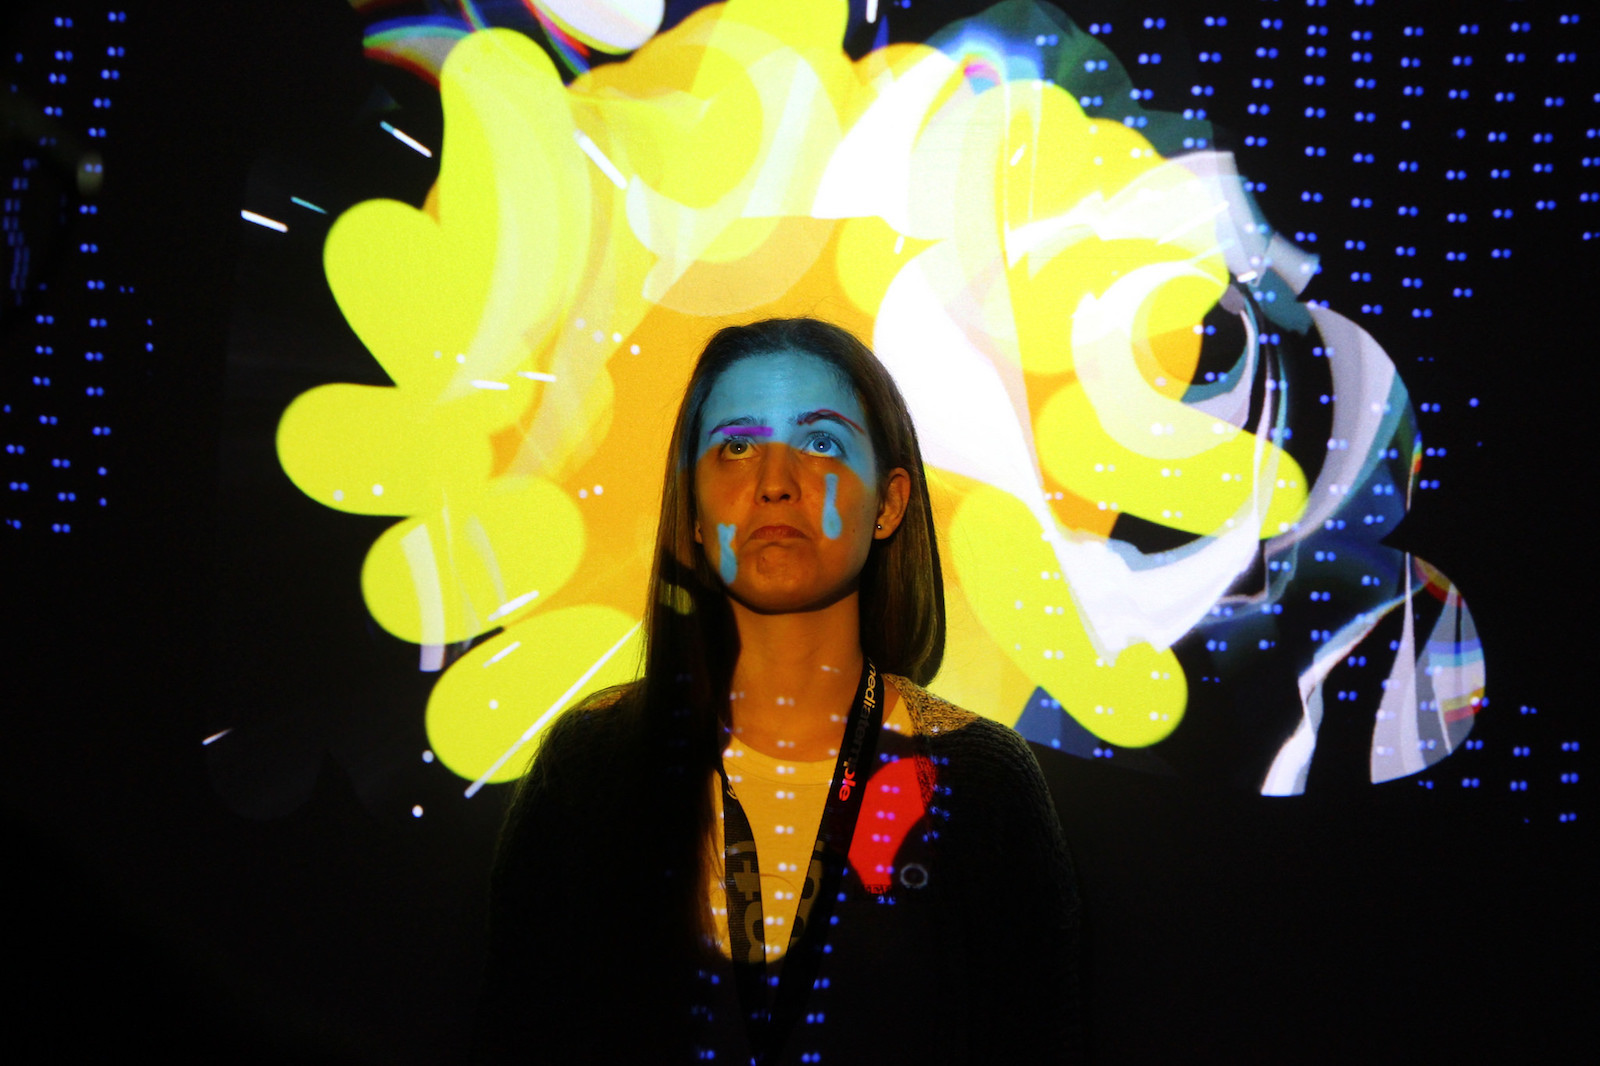 A woman stands against a digital art installation at FITC